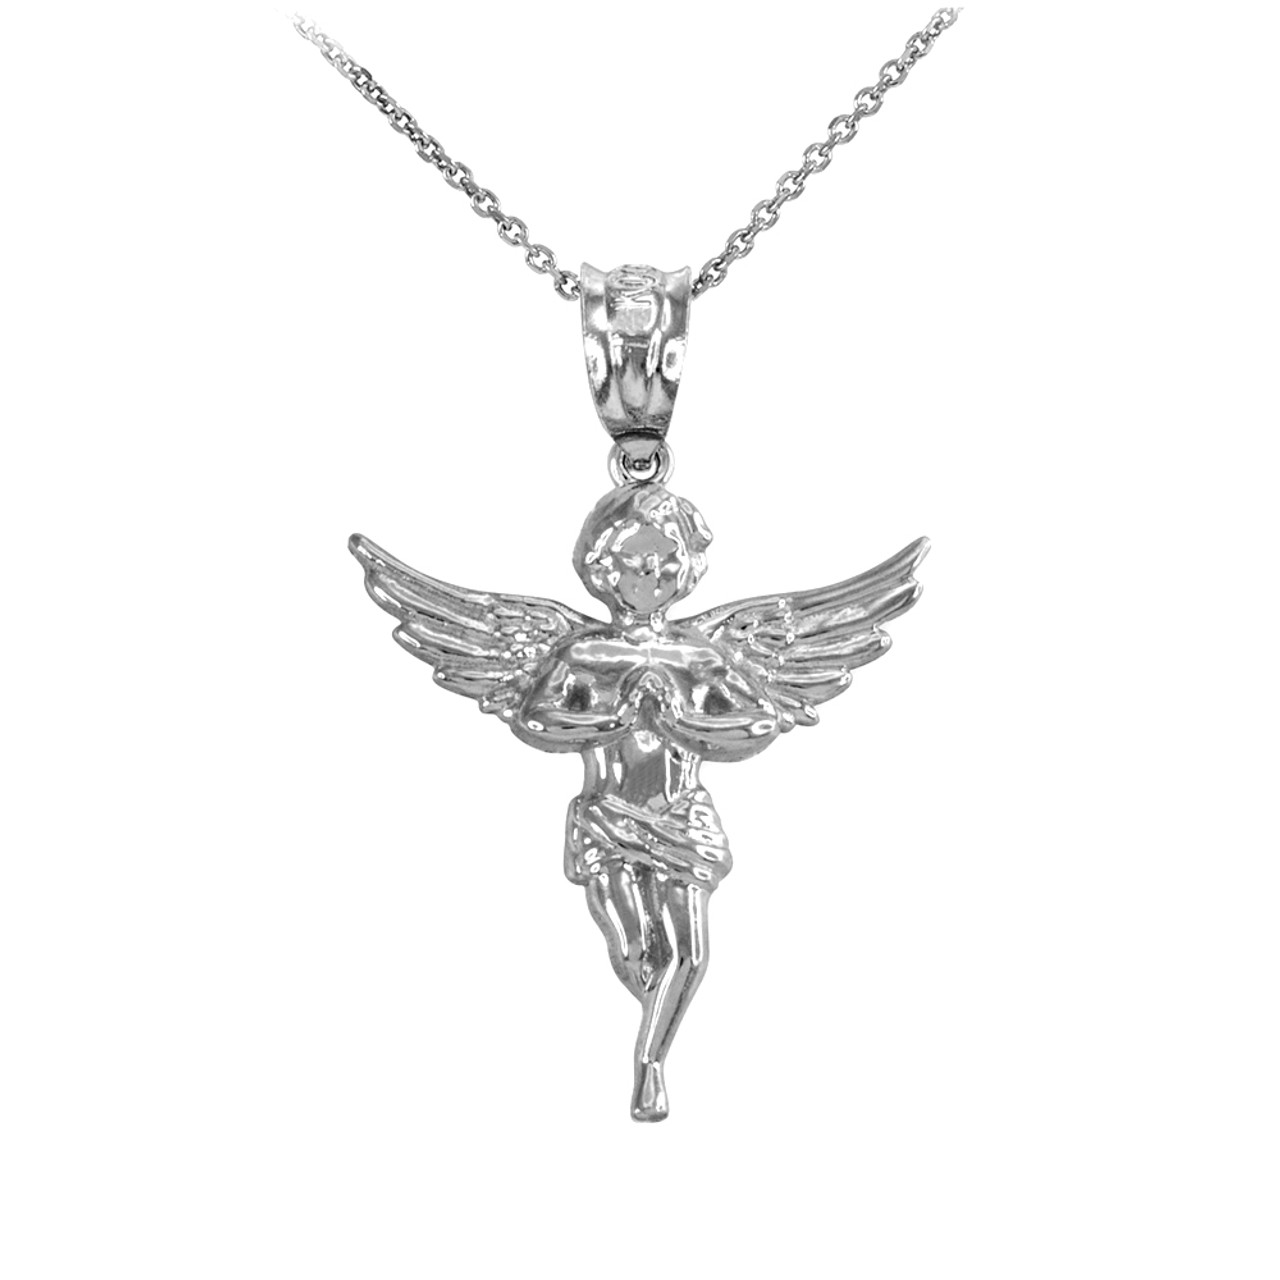 e5a464bc5ab32 Sterling Silver Textured Praying Angel Pendant Necklace